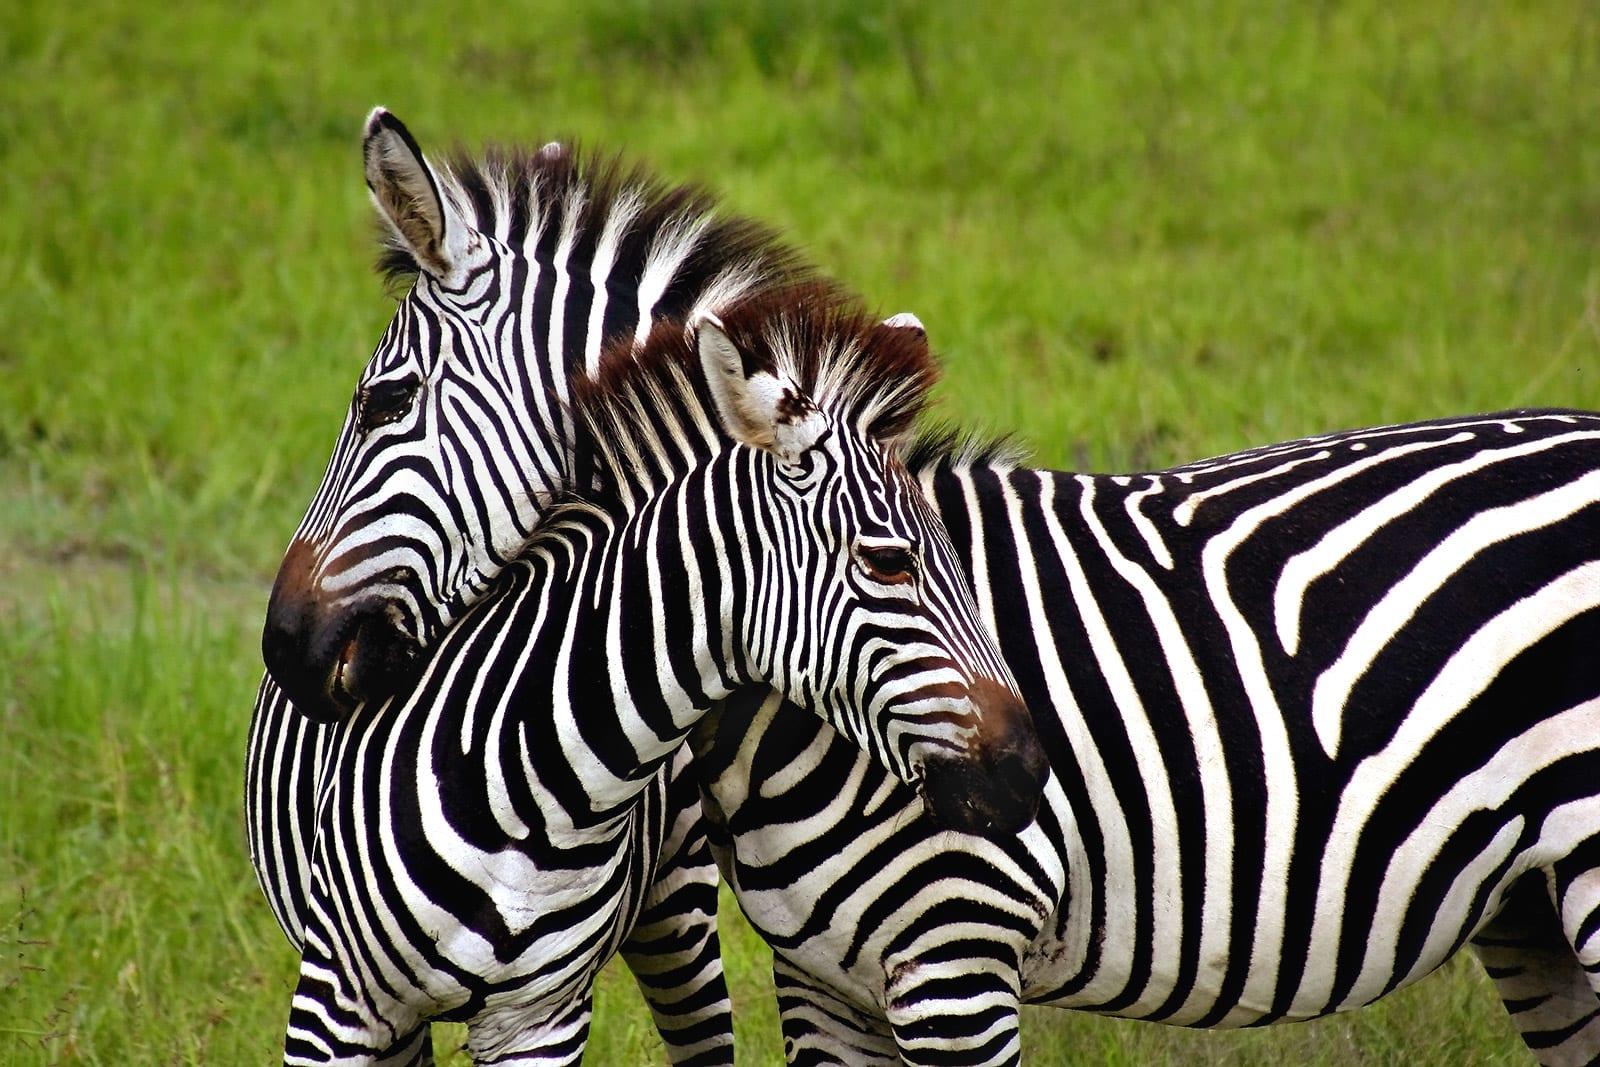 Zebra resting neck on another zebra in Africa